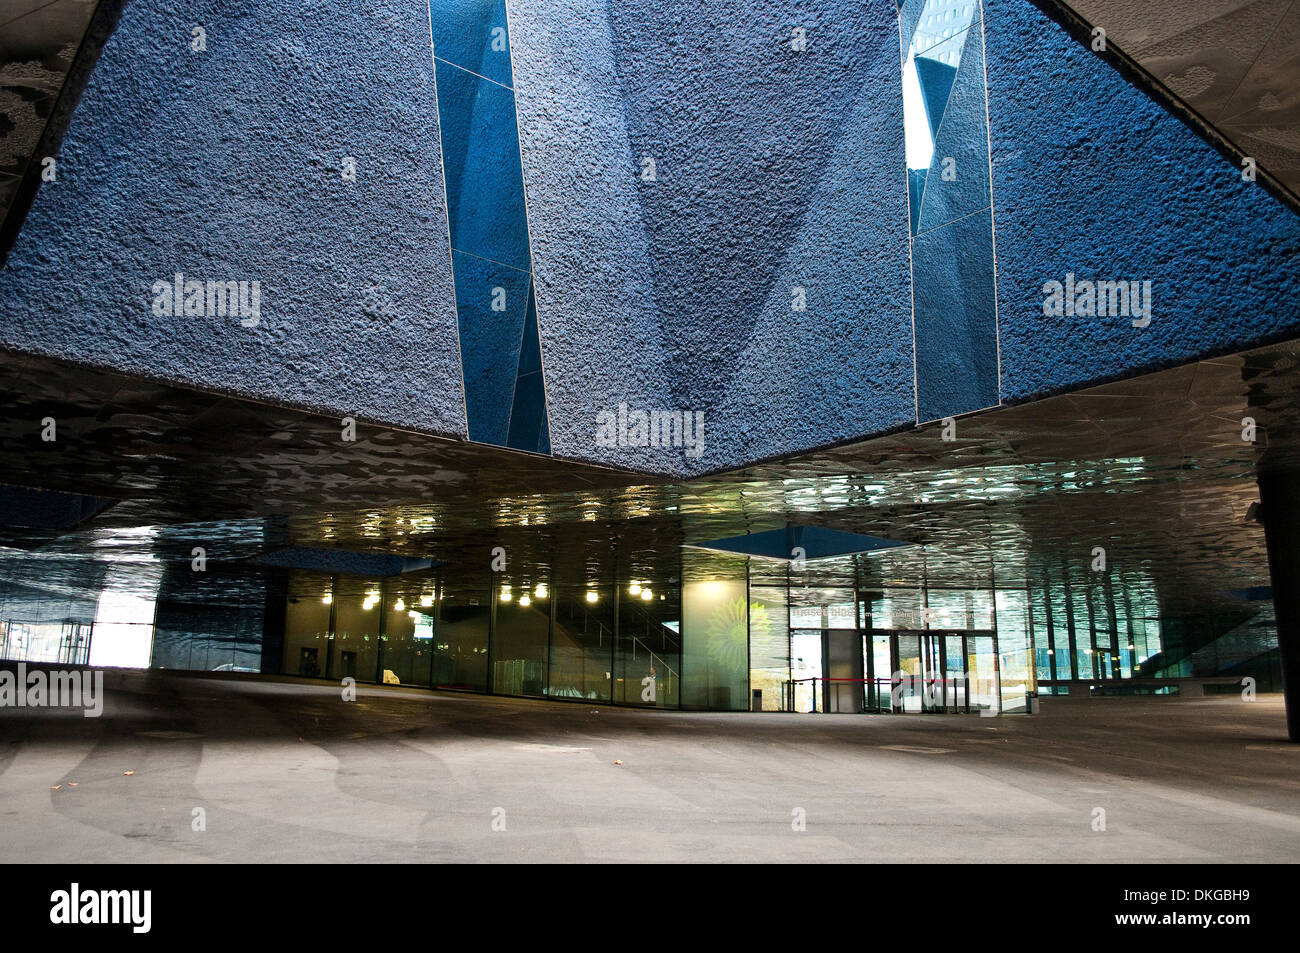 Entrance to Museu Blau - Blue Museum, Natural History and Science Musuem, Barcelona, Catalonia, Spain - Stock Image